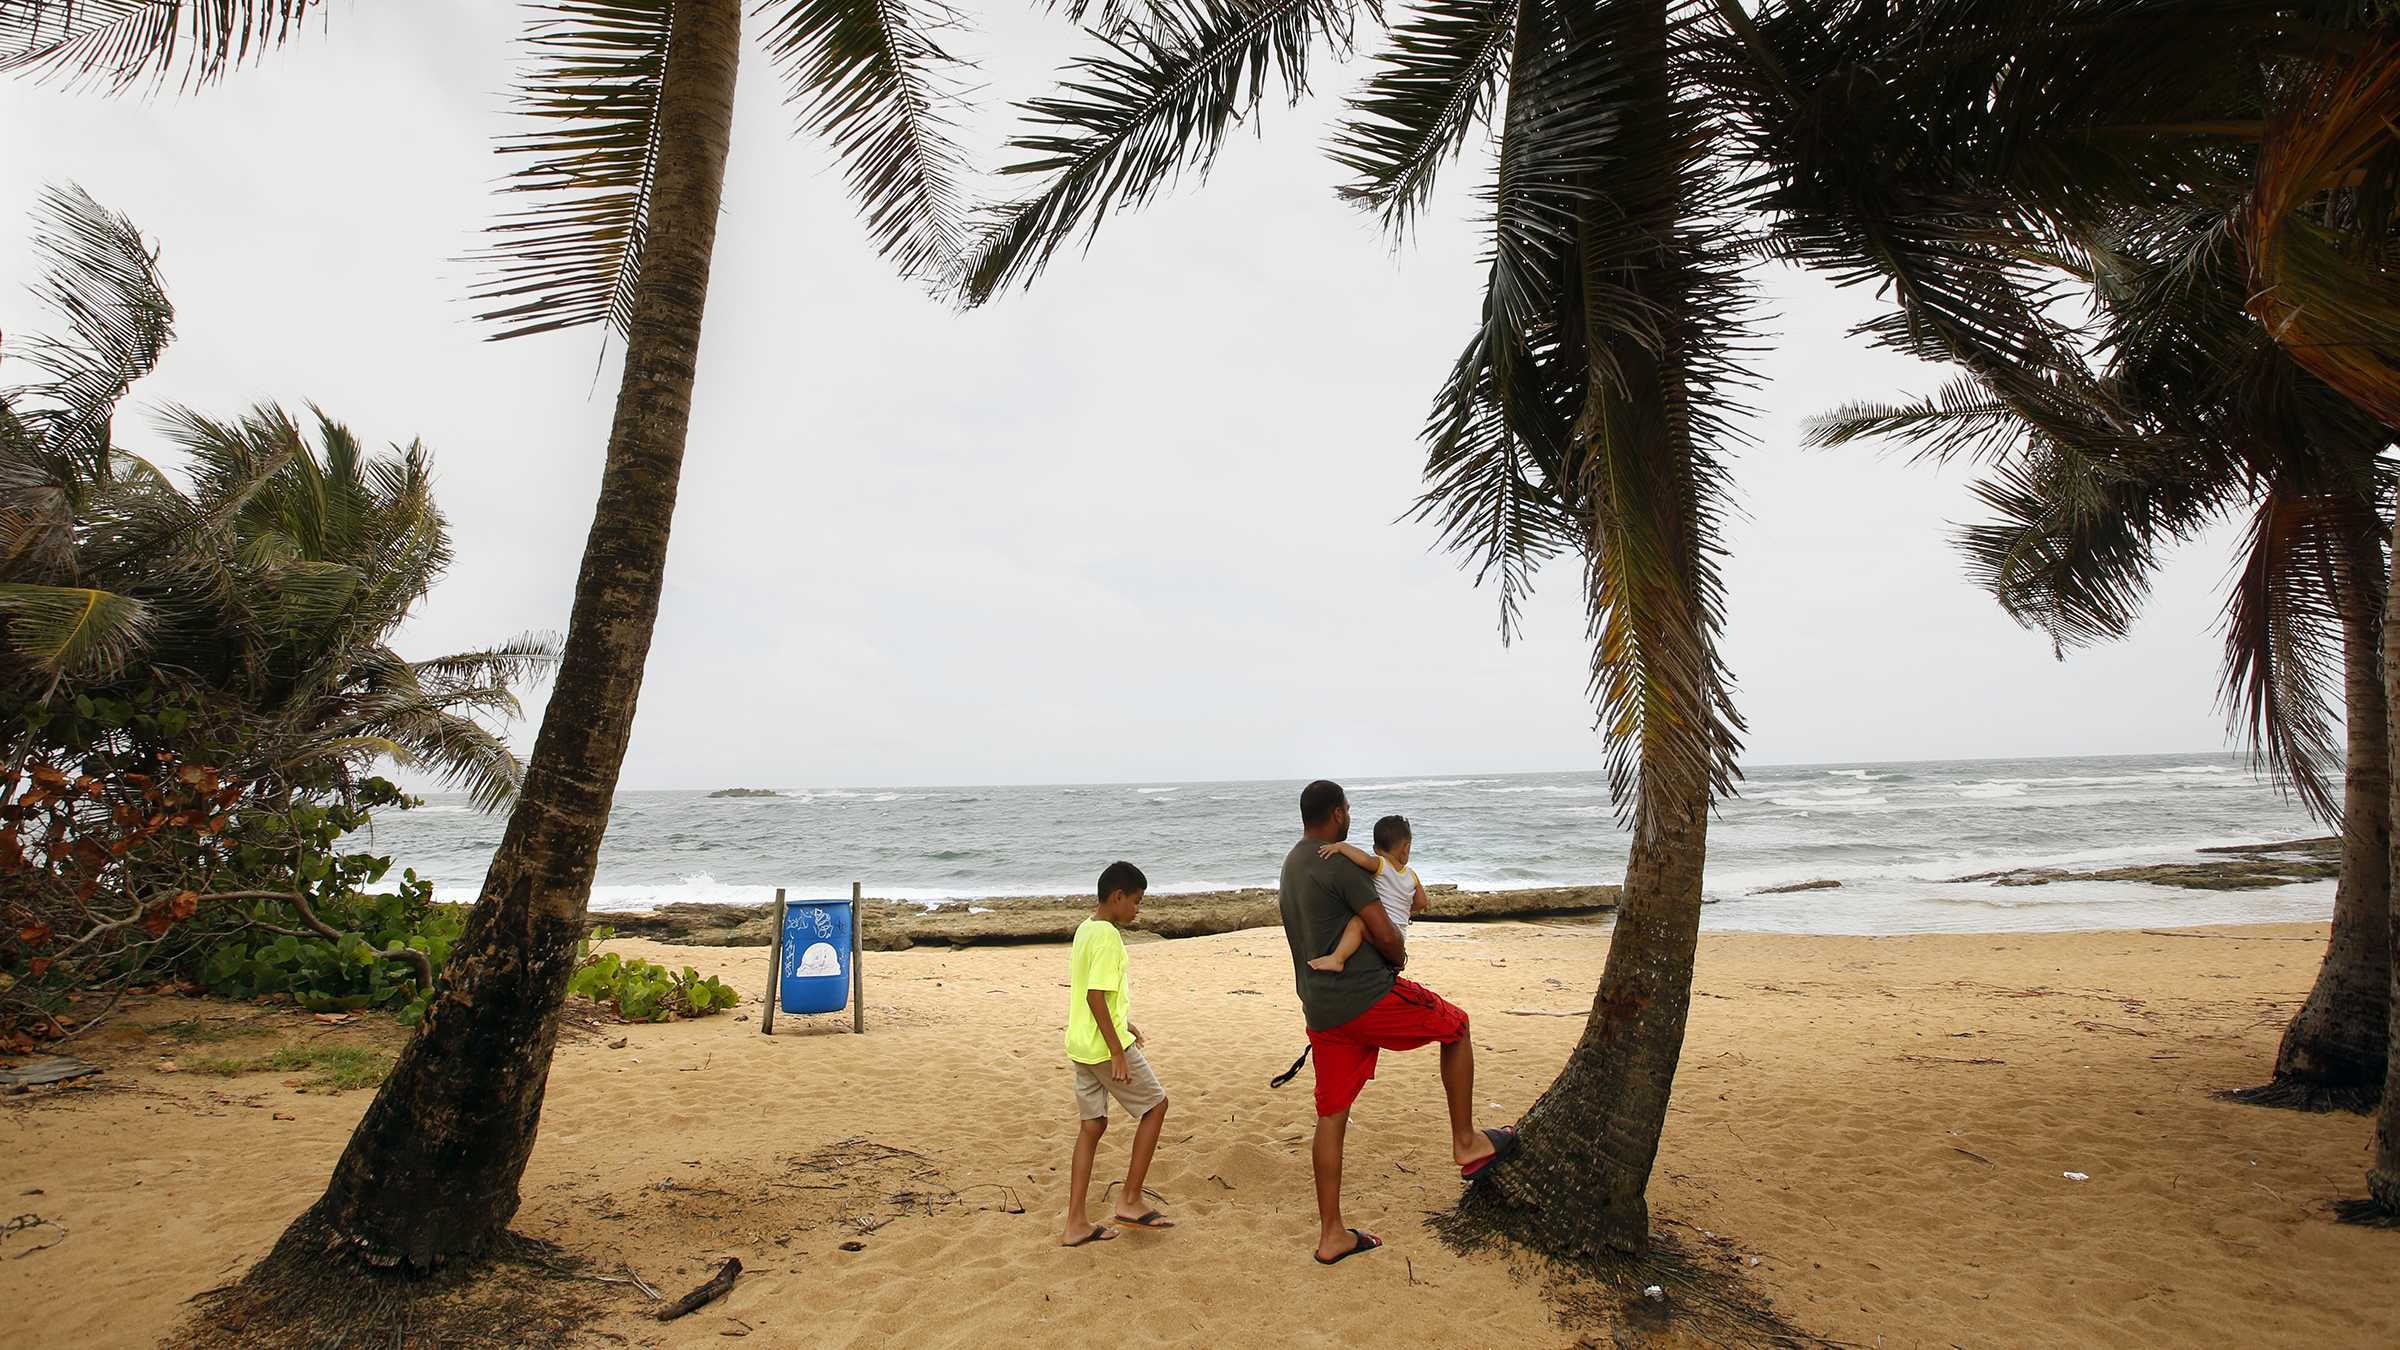 Residents of San Juan, Puerto Rico are anticipating a direct hit from Hurricane Maria, on Tuesday, Sept. 19, 2017. The hurricane is expected to pass over the island on Wednesday. (Carolyn Cole/Los Angeles Times/TNS)